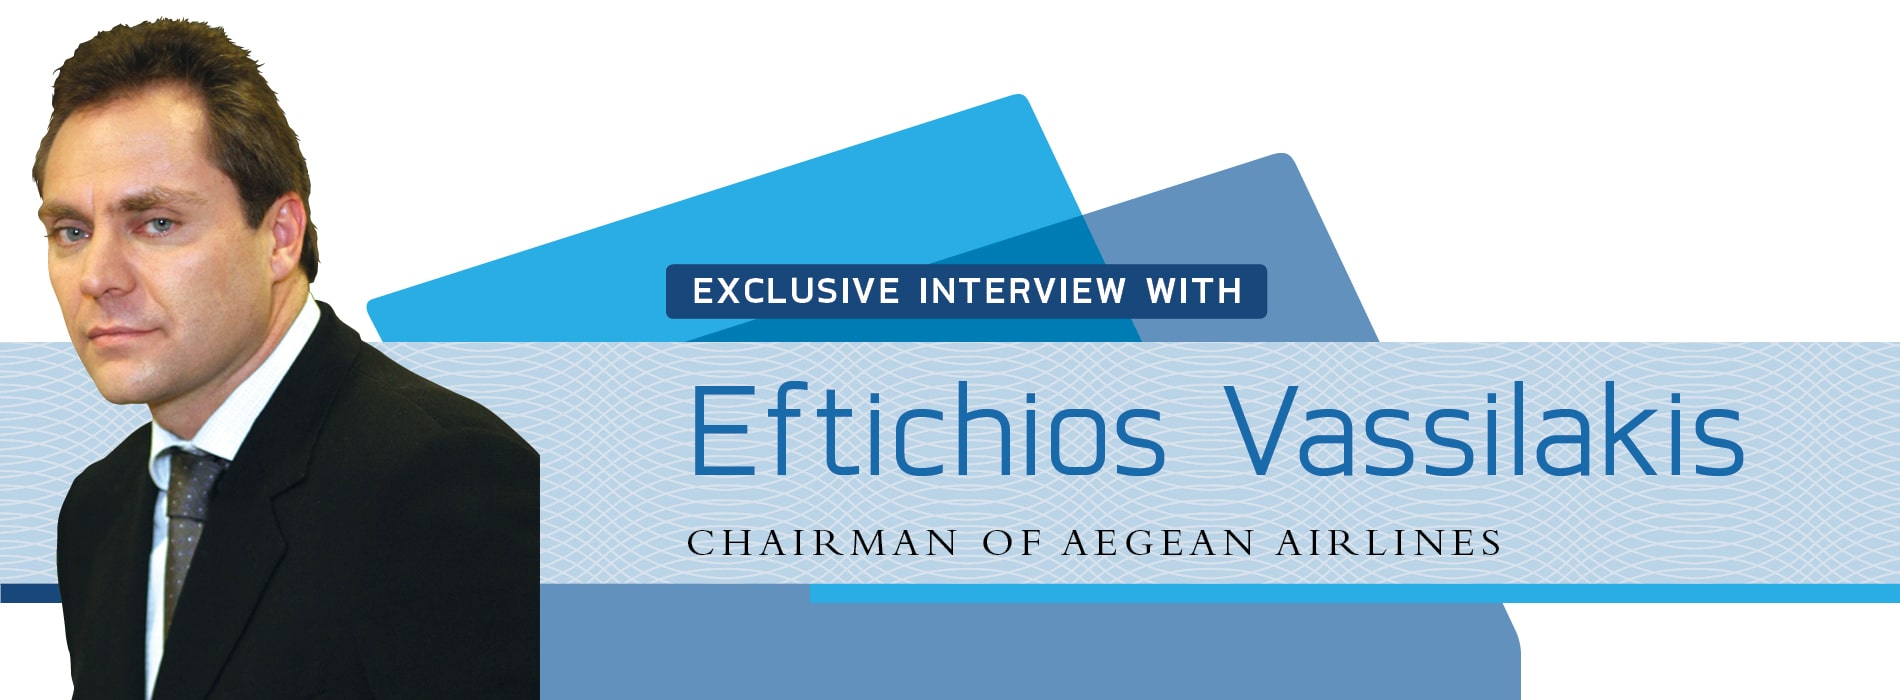 Interview with Eftichios Vassilakis,Chairman of Greece's AEGEAN Airlines